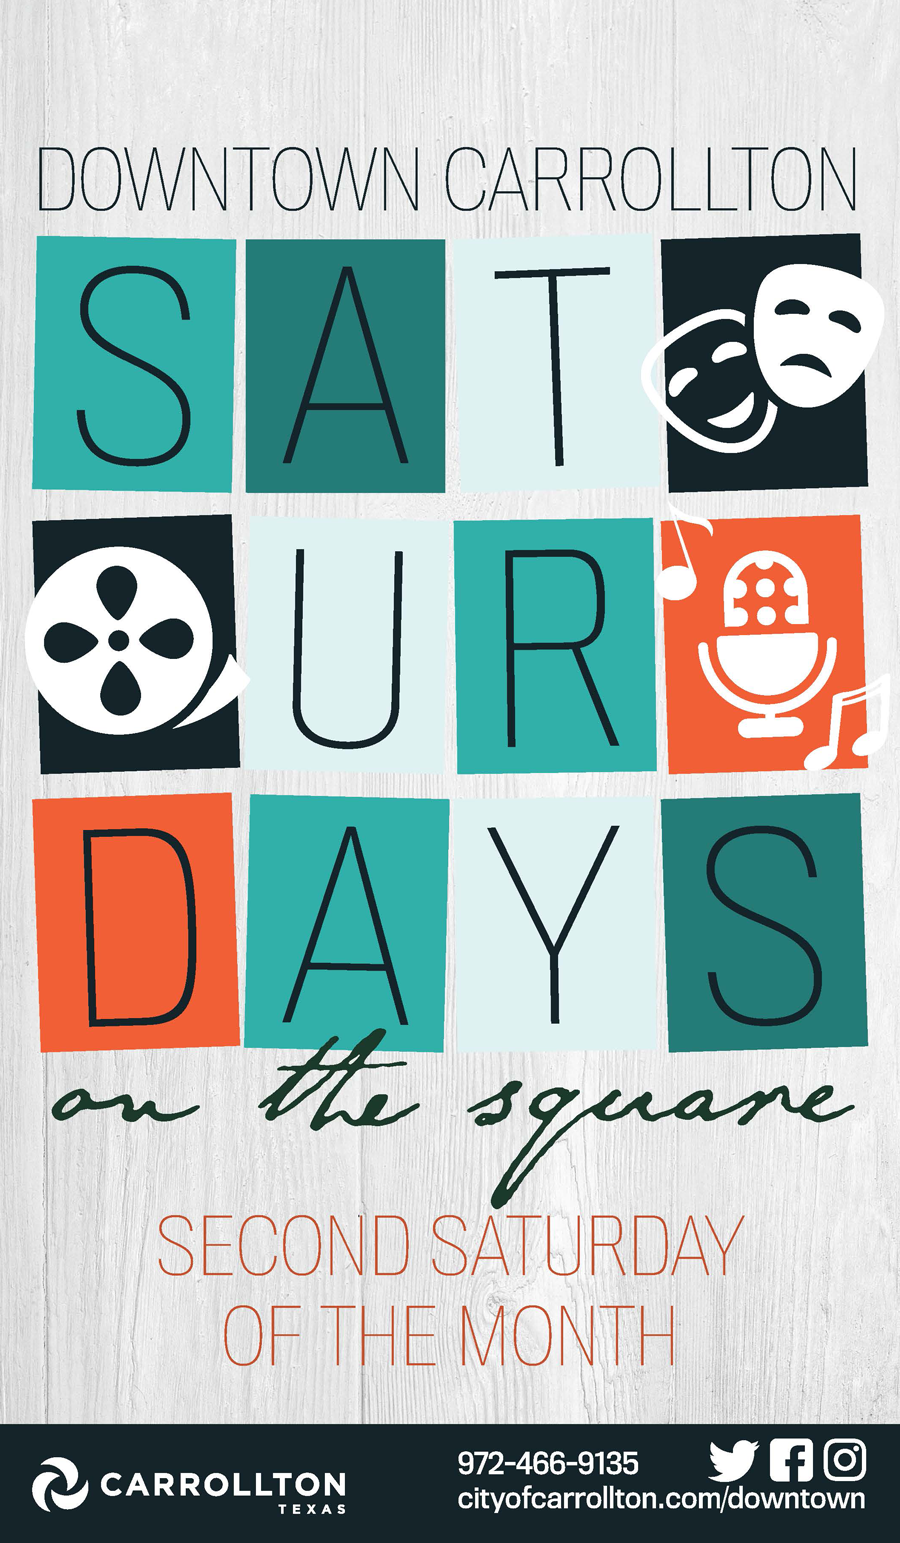 Saturdays-OTS-image